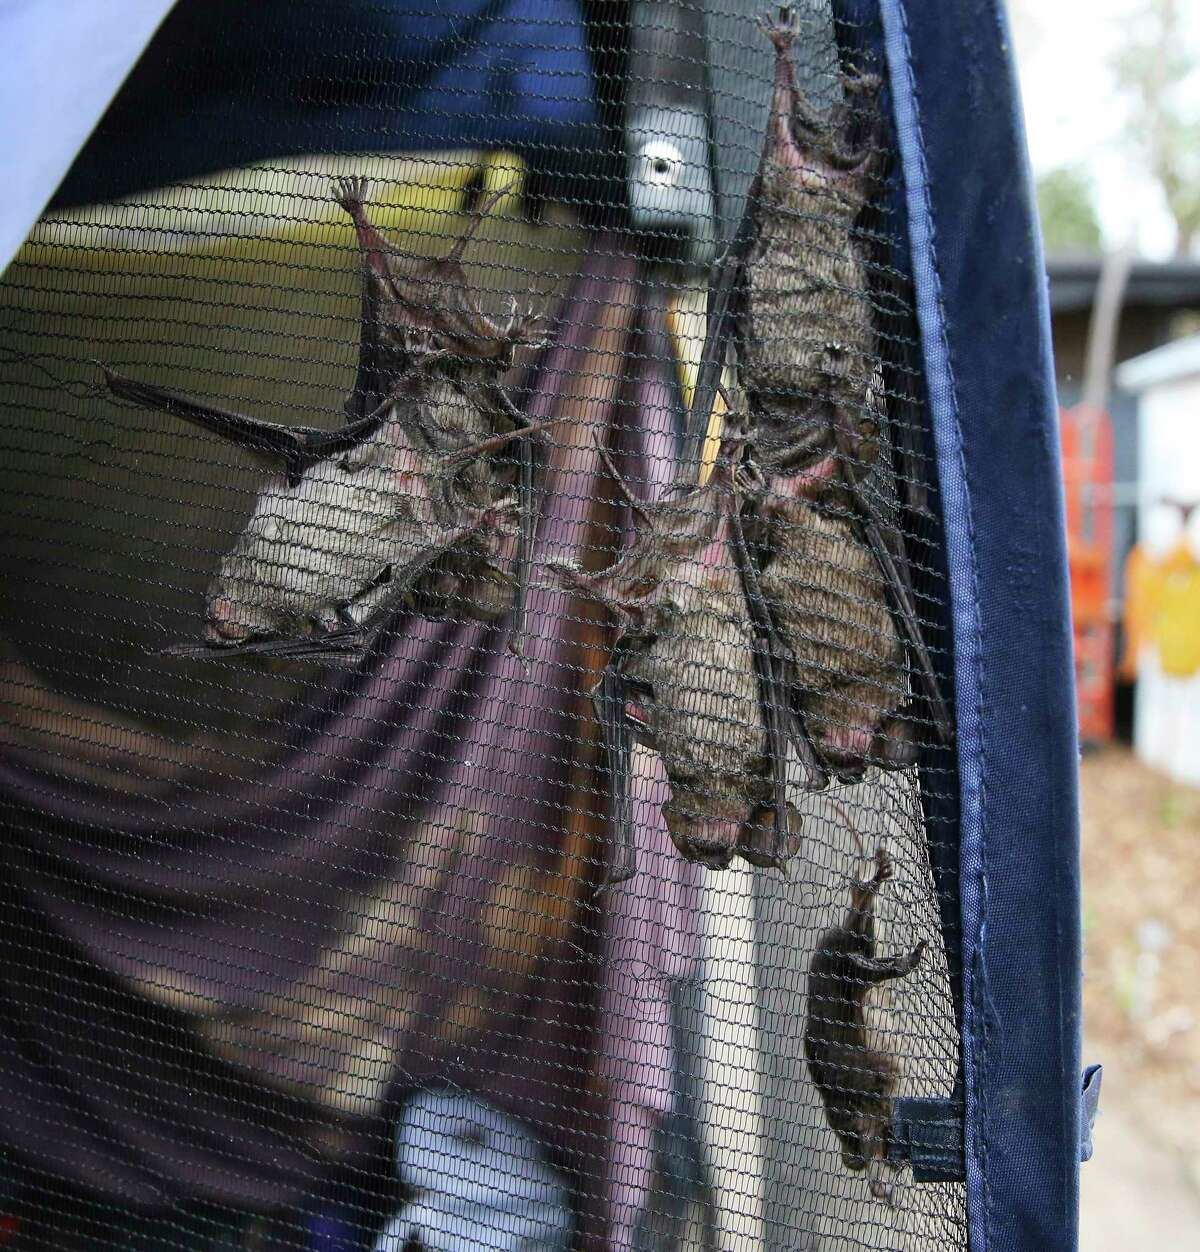 Several Mexican free-tailed bats hang from netting inside a pop-up shelter at Southern Wildlife Rehab, where volunteers are caring for the mammals. Hundreds had to be rescued after they became so cold during the recent prolonged freezing weather that they fell from their shelter under bridges and other high places.